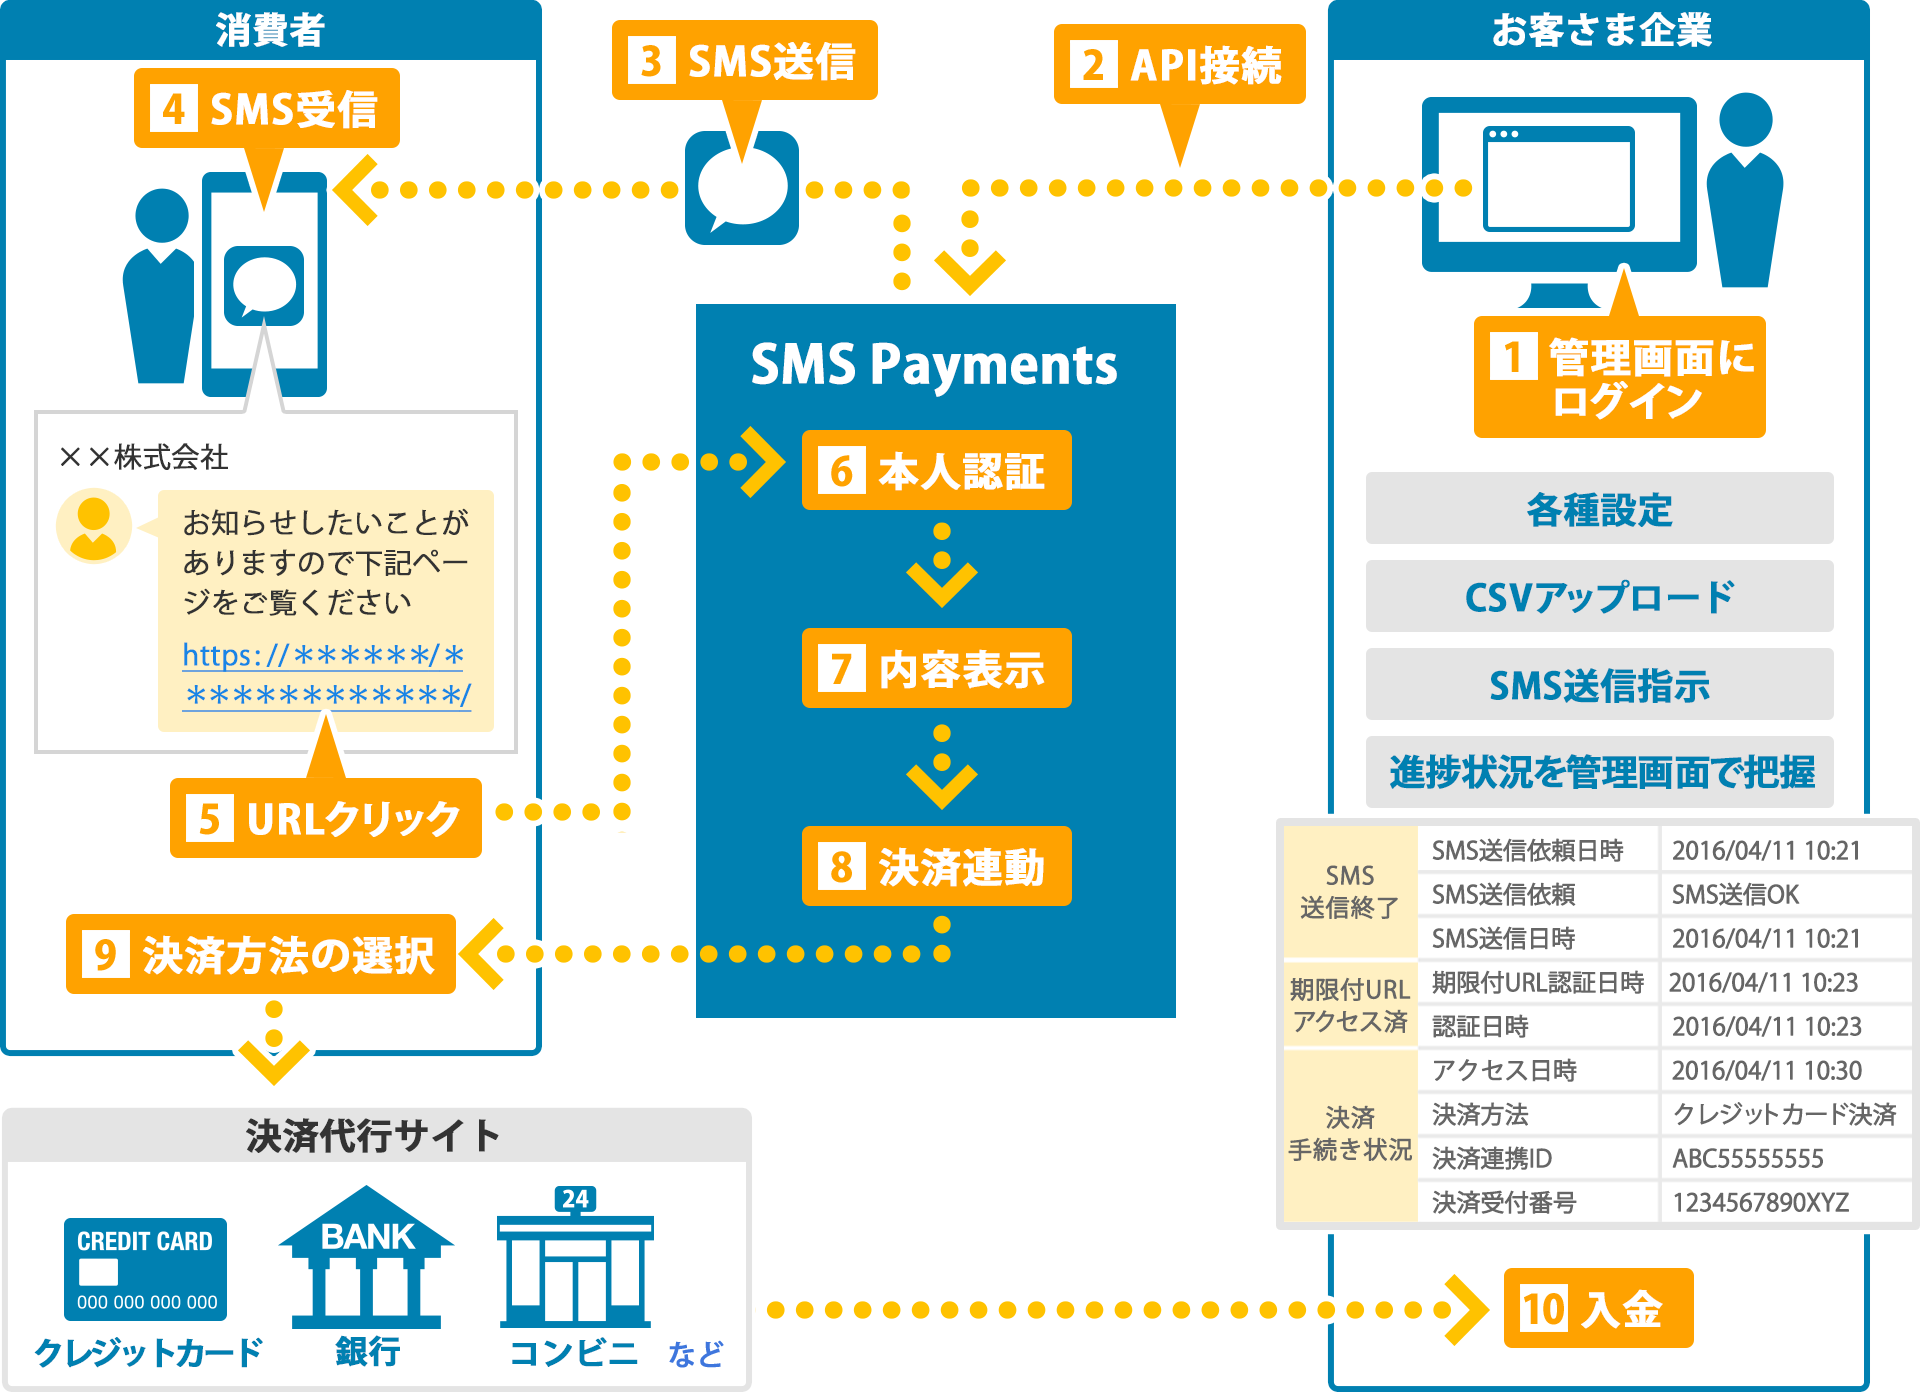 SMS Payments®のシステム概要図